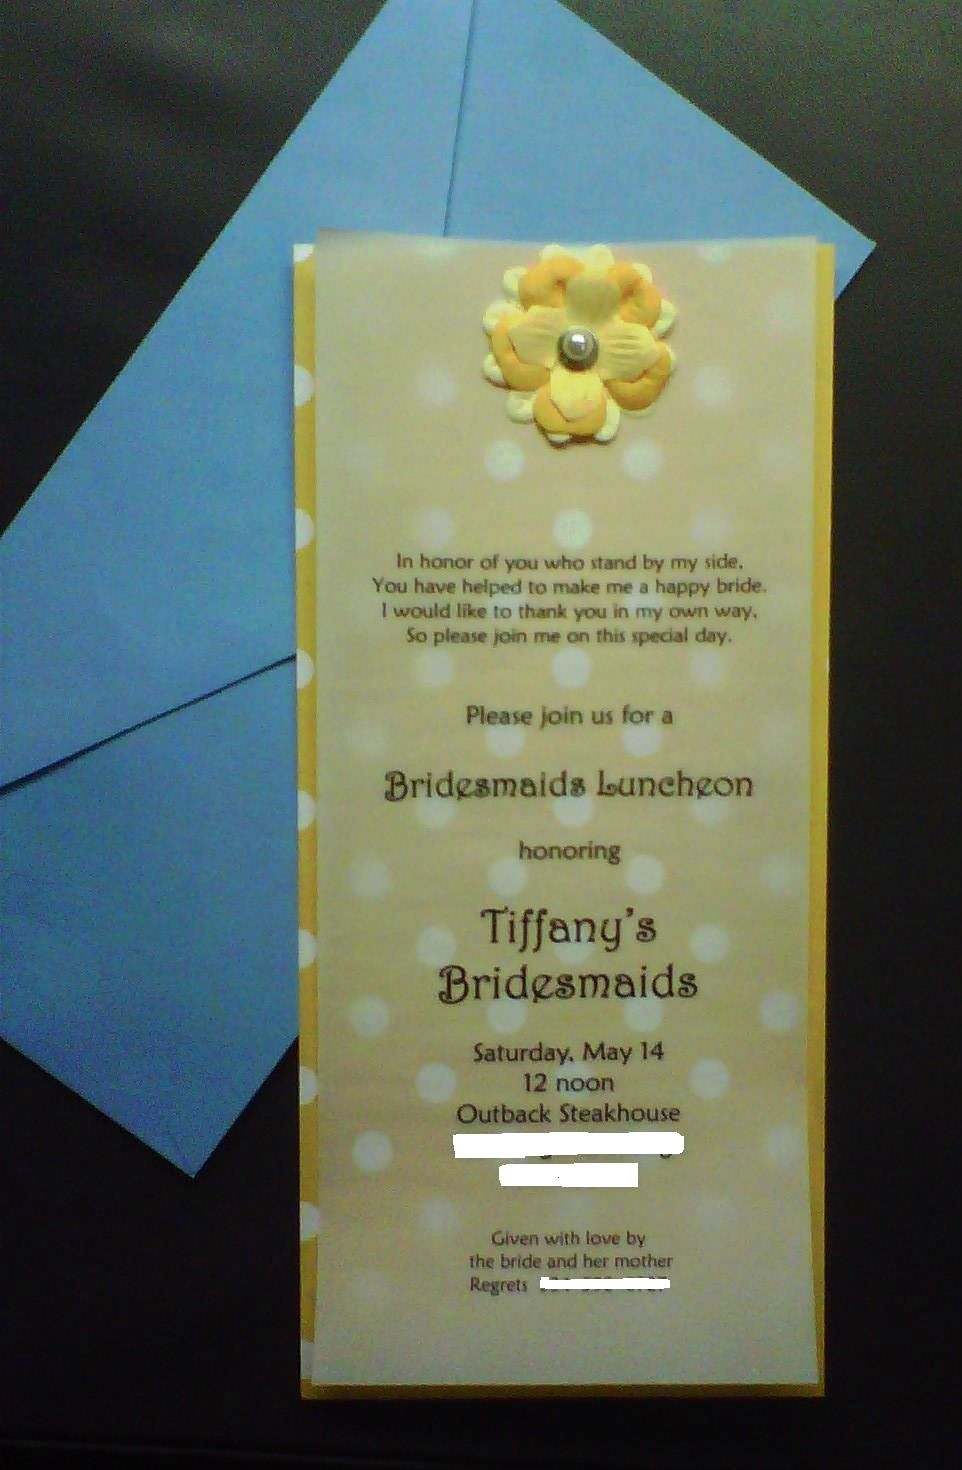 how to return address wedding envelopes%0A Bridesmaids luncheon invitationssimple and low cost